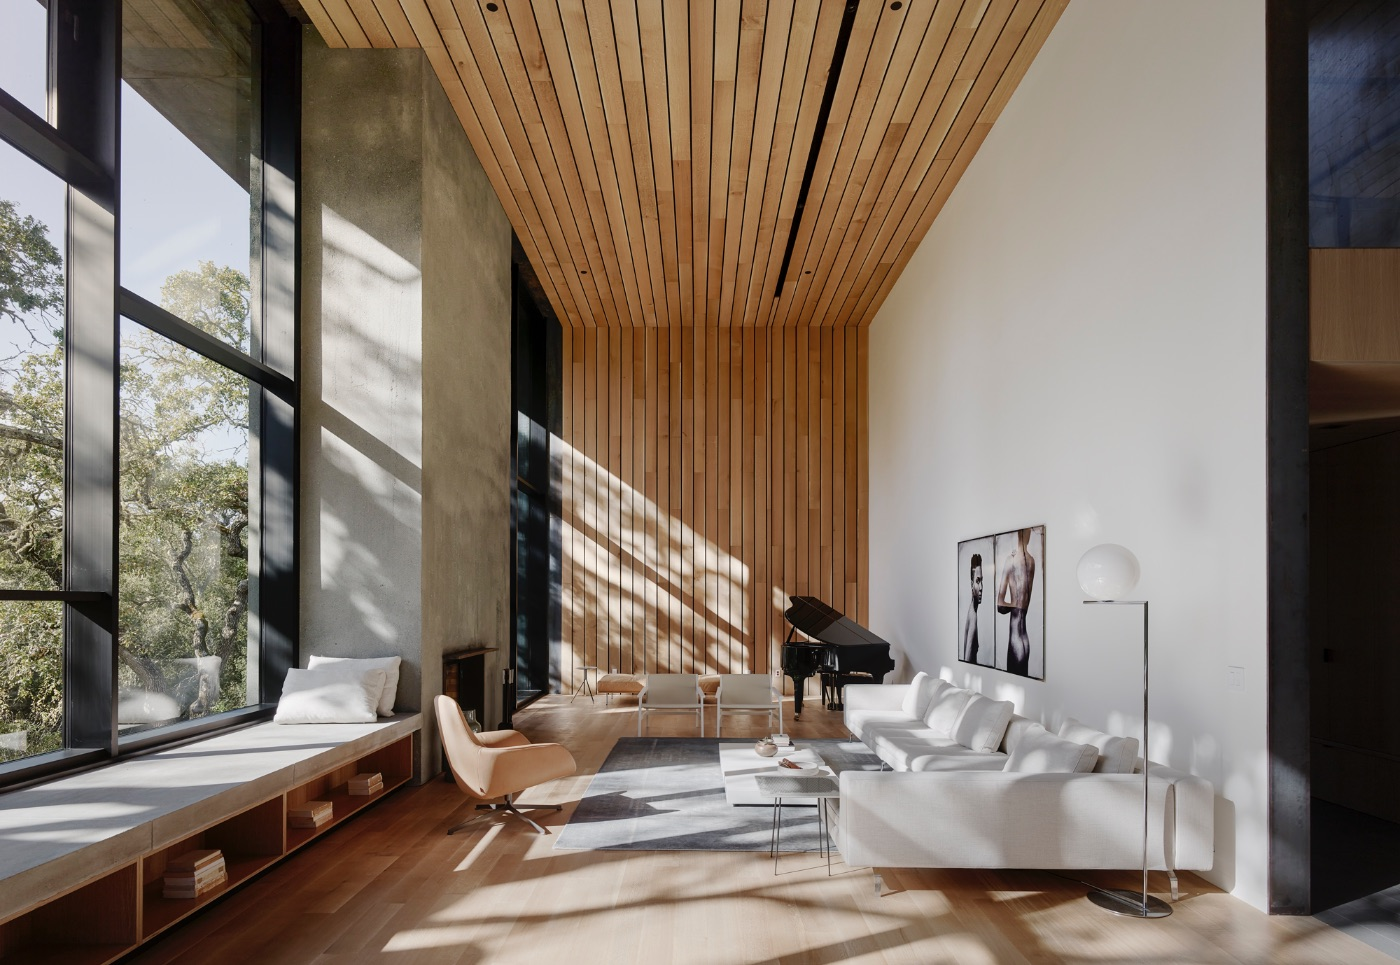 6_Miner Road House_Faulkner Architects_Inspirationist